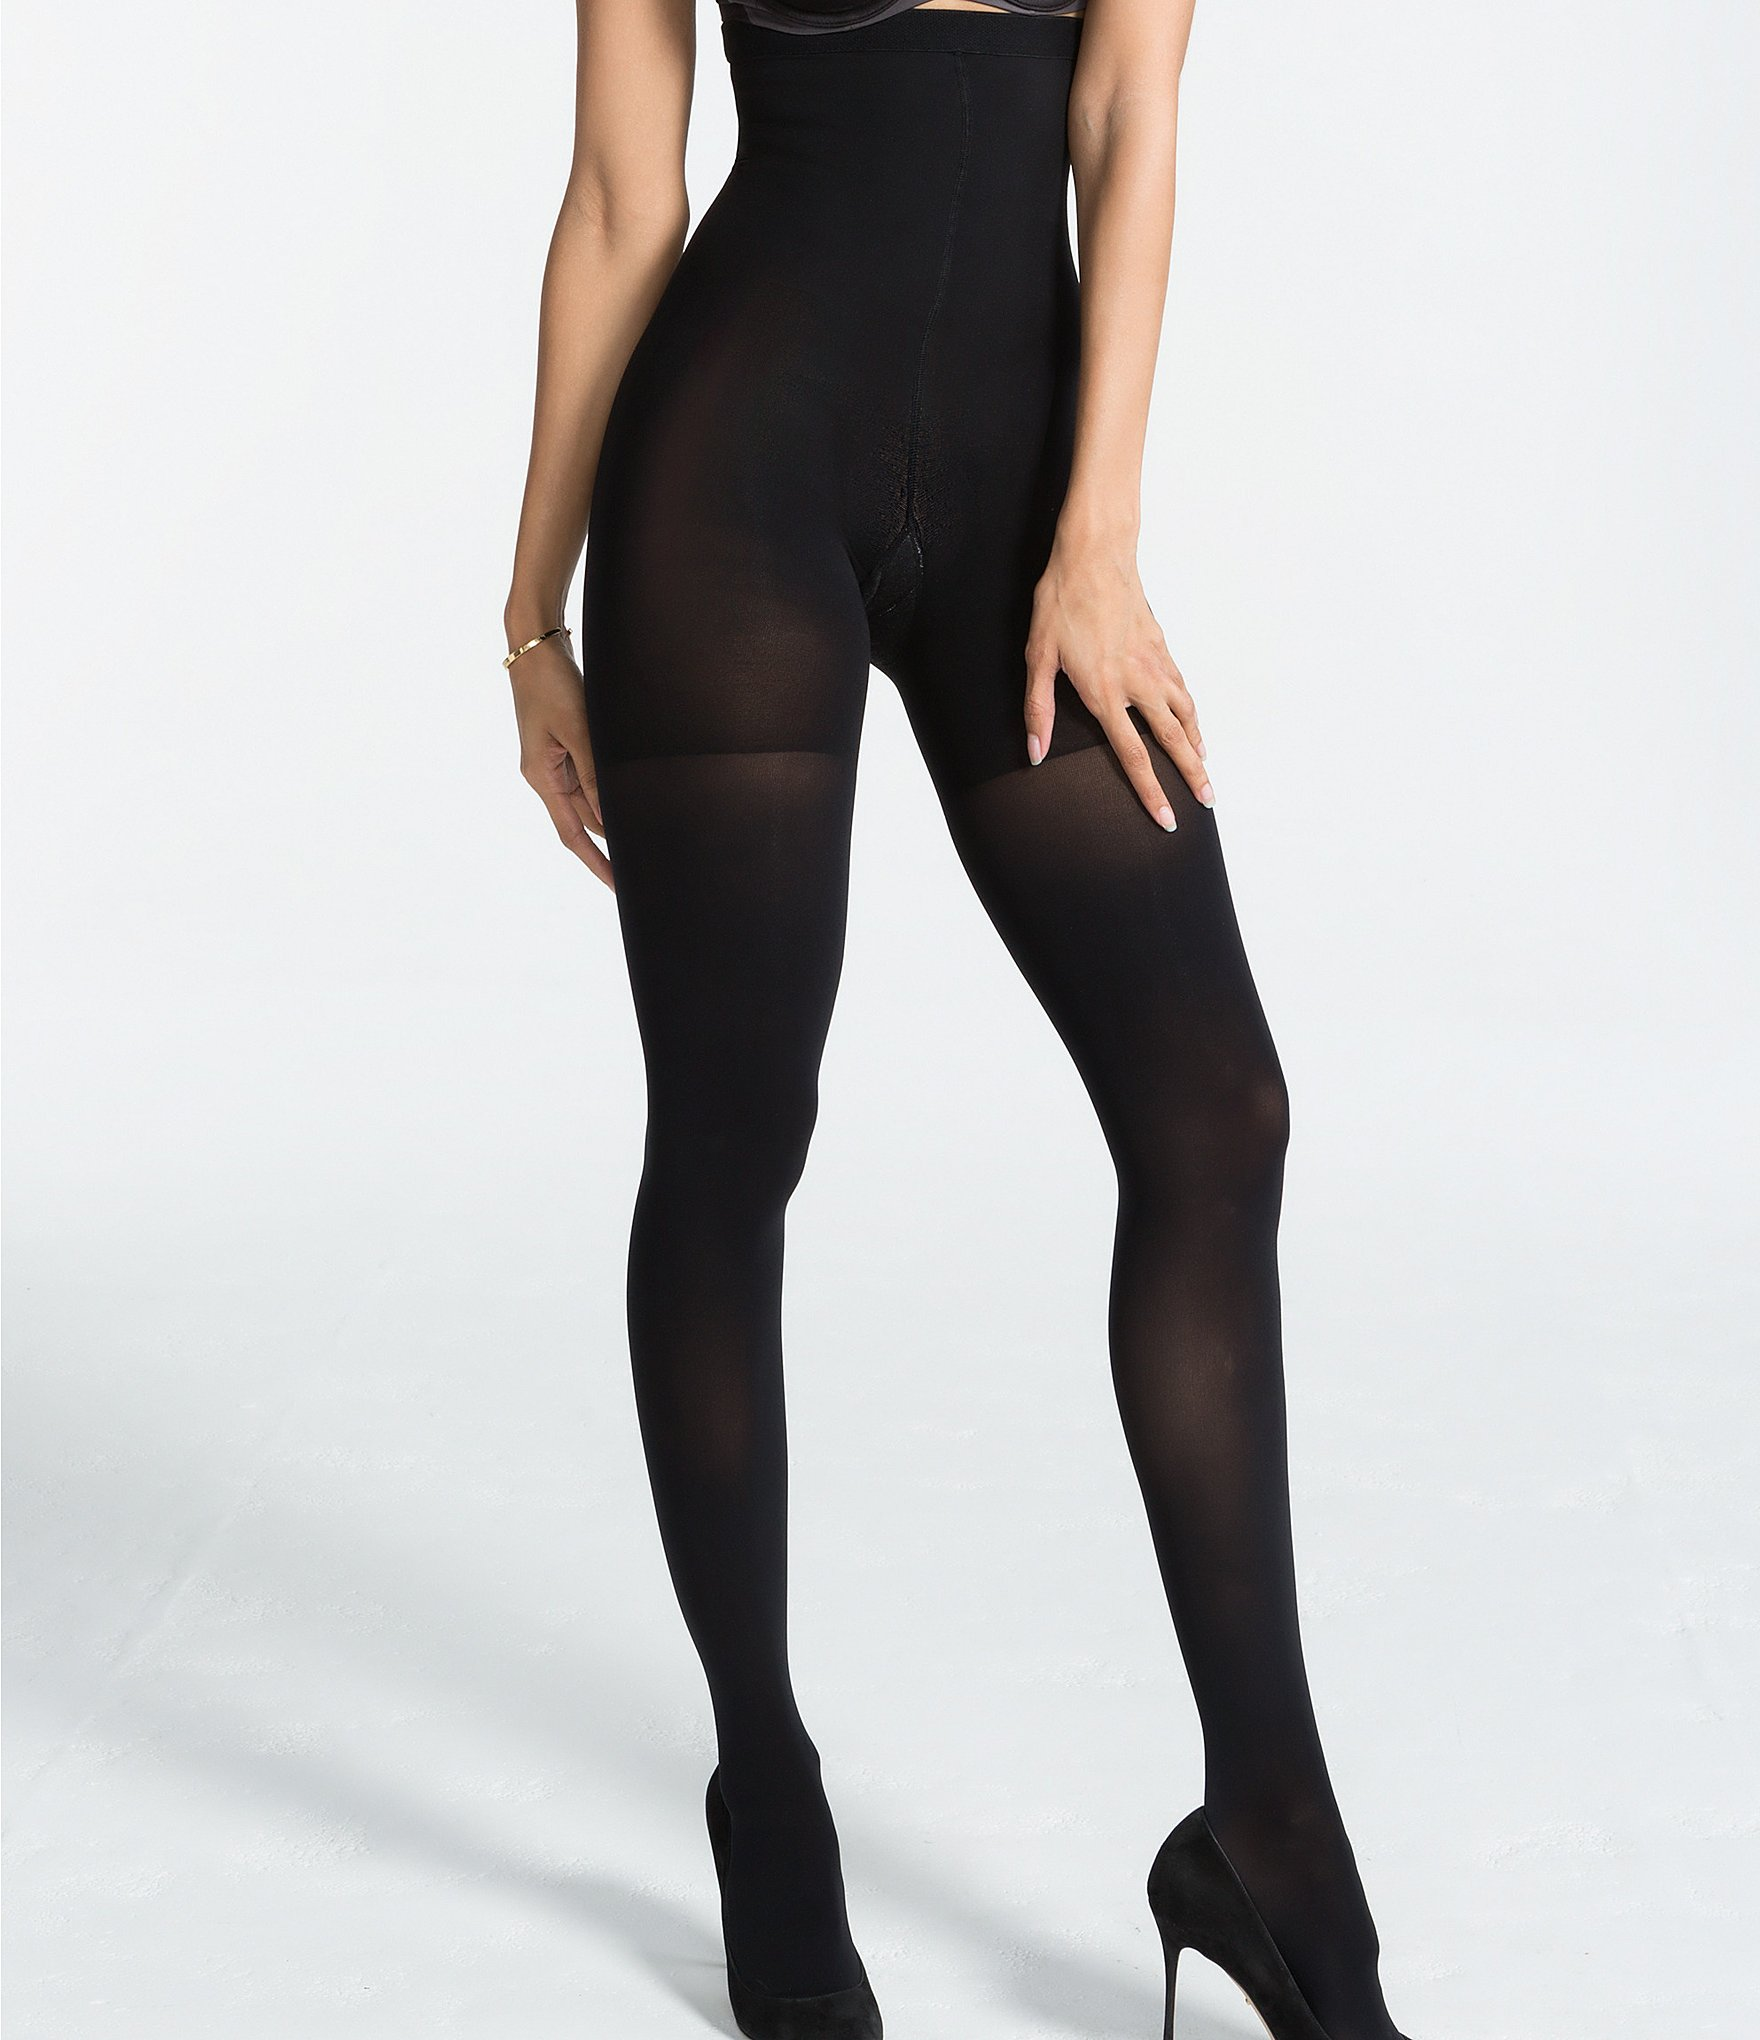 A Secret so sheer From curve-conscious fashions to office-friendly attire, SECRET's extensive collections of pantyhose add a dash of polished femininity to any look.